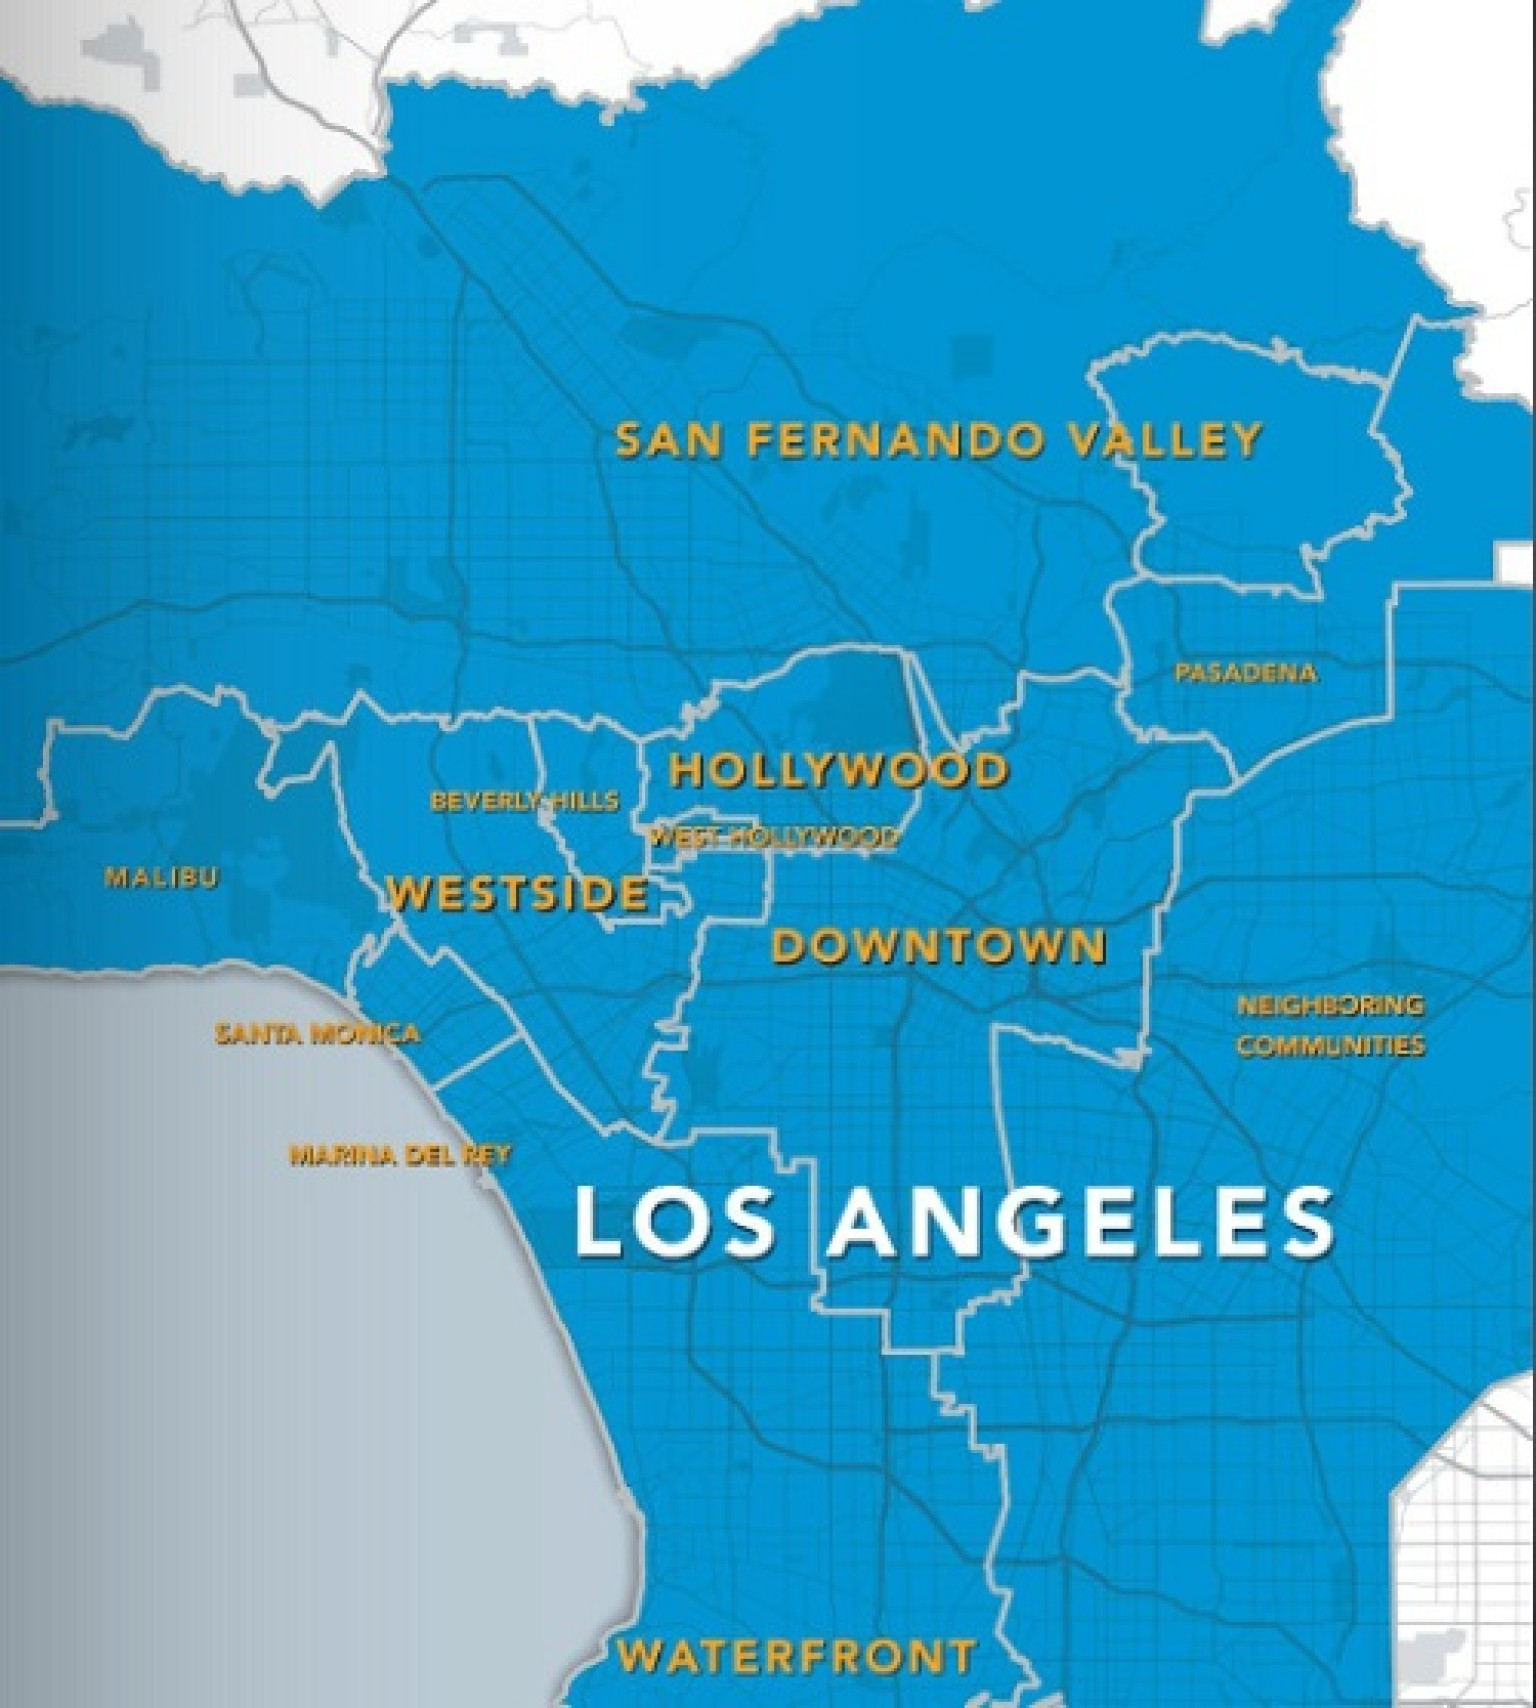 Bad Areas Of Los Angeles Map.In Flight Magazine Features Worst Ever Map Of Los Angeles Bad Map